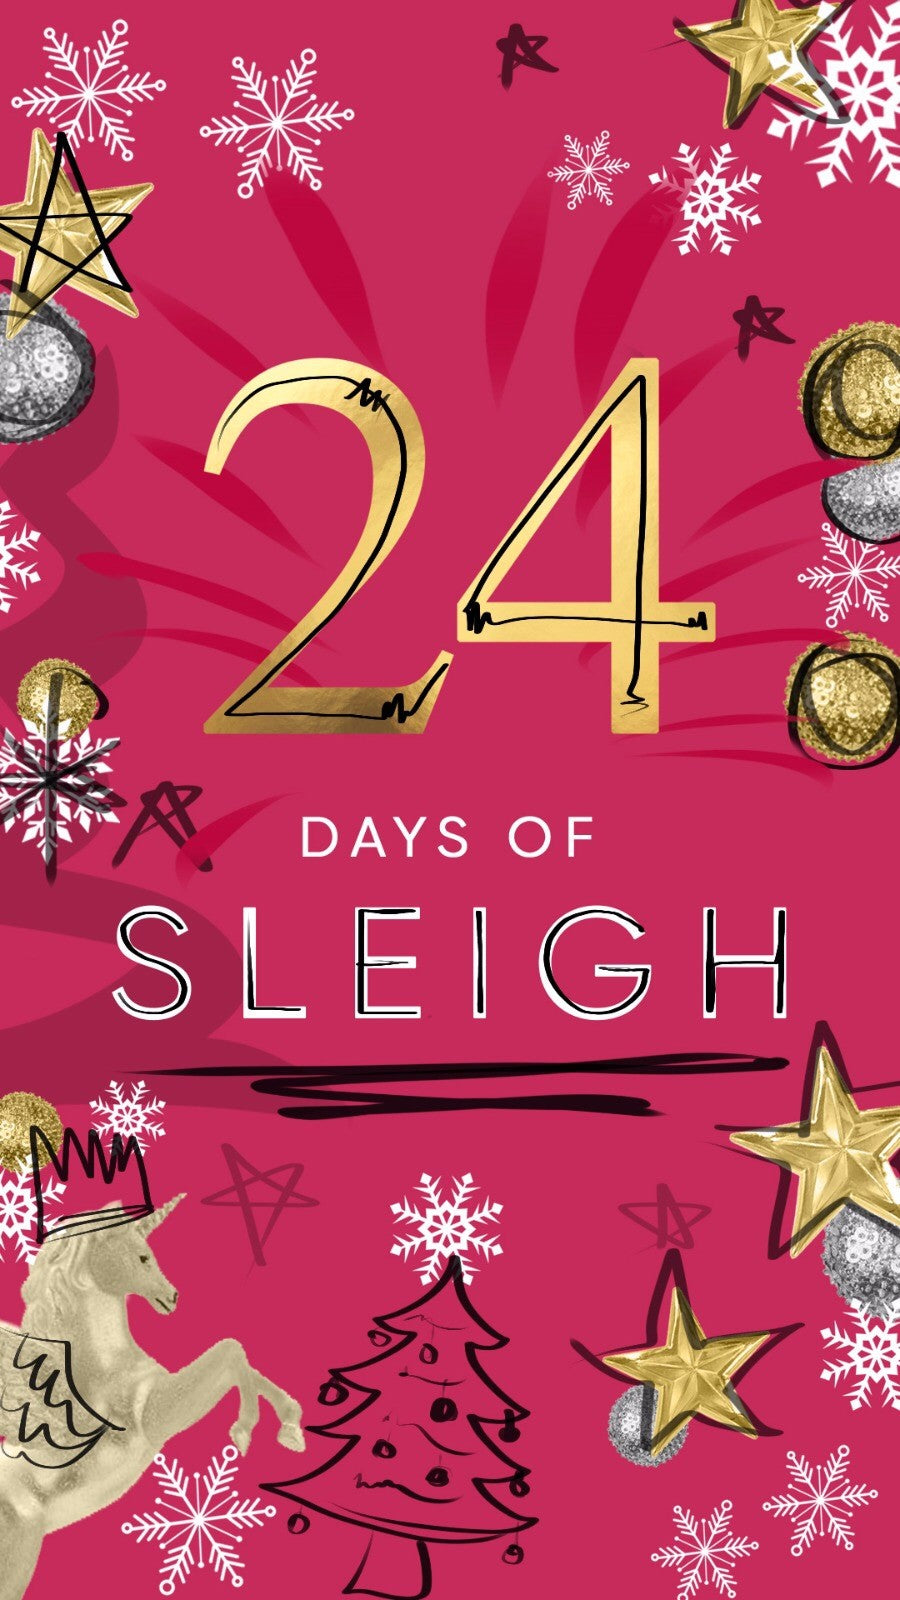 24 DAYS OF SLEIGH